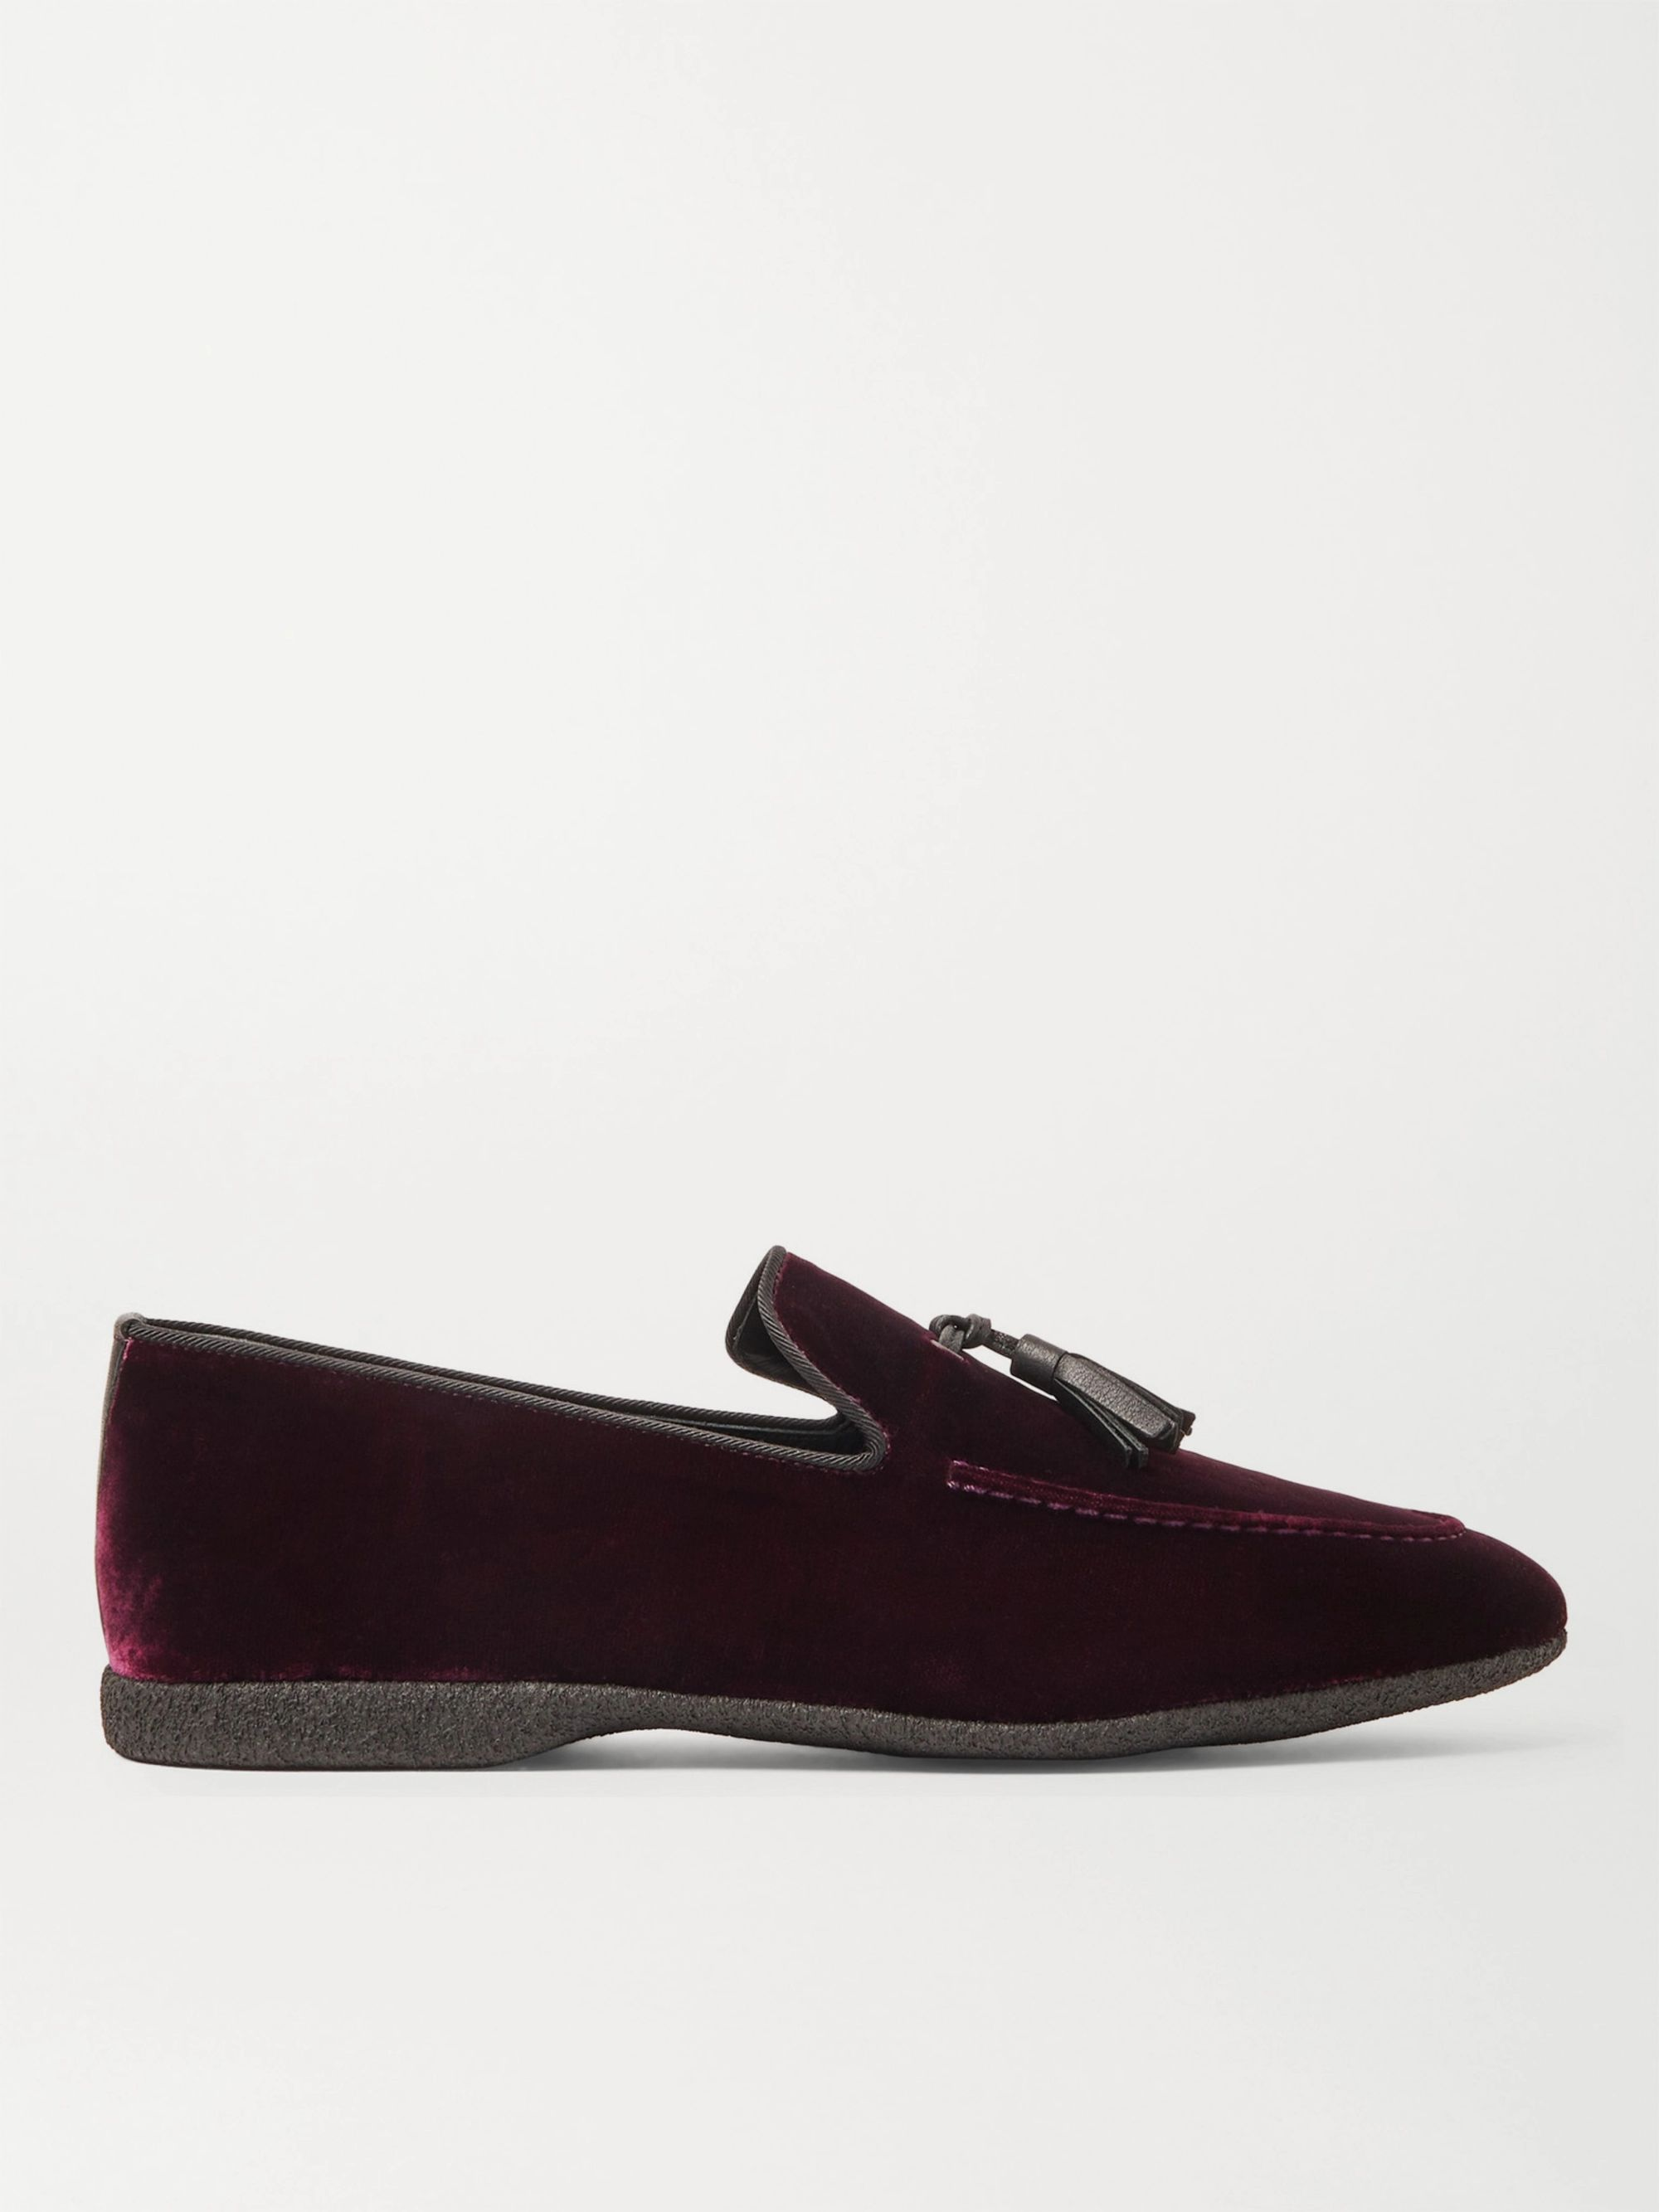 Paul Stuart Hope Leather and Grosgrain-Trimmed Velvet Tasselled Slippers